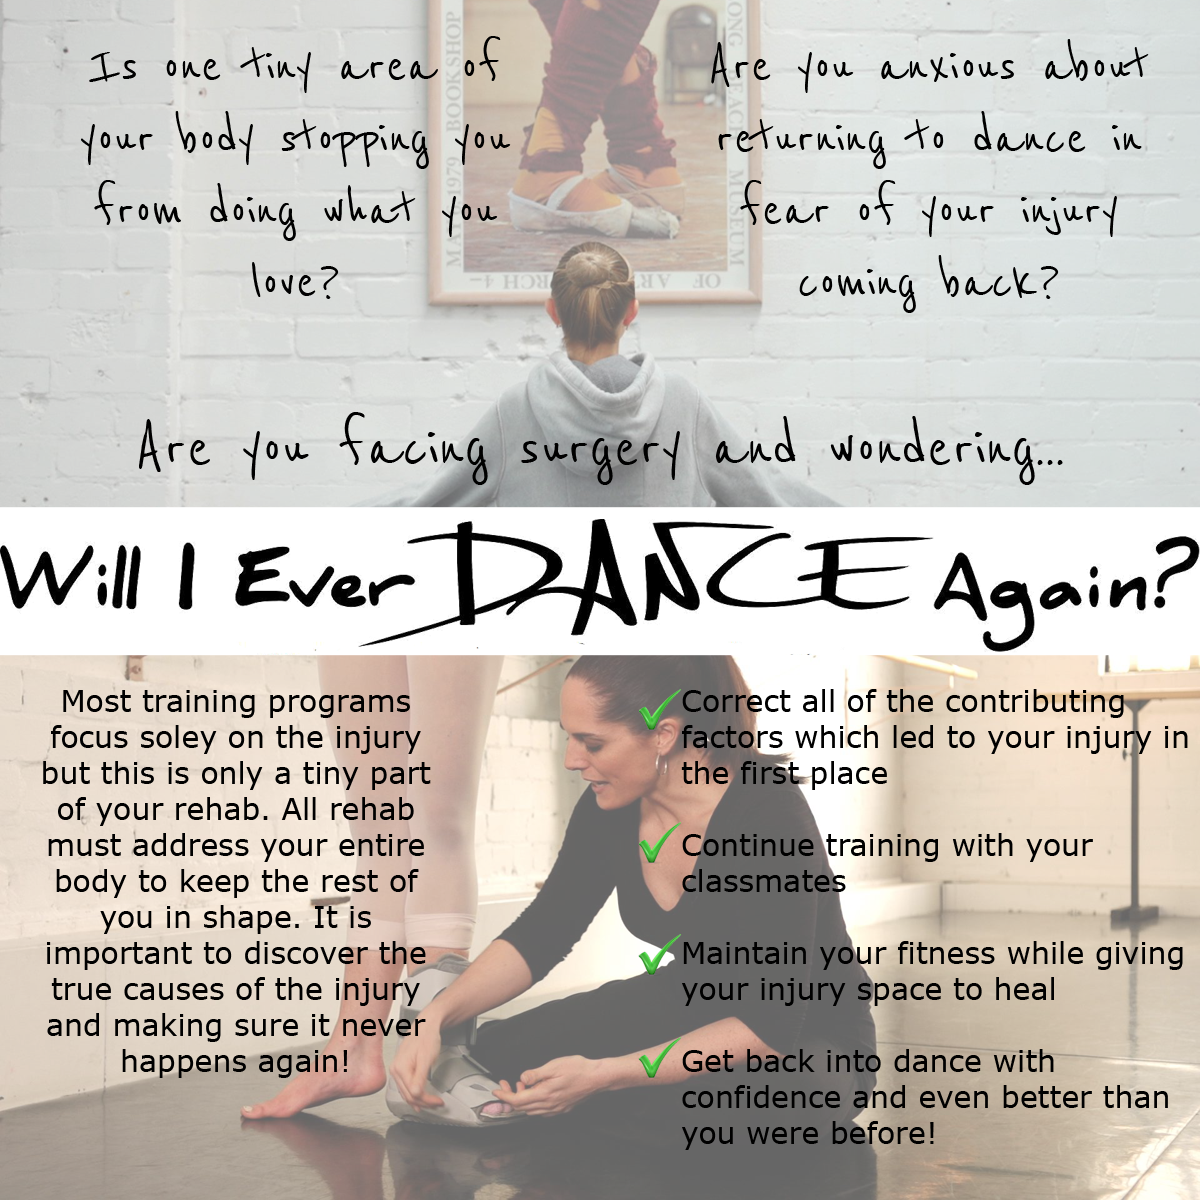 Will I Ever Dance Again?